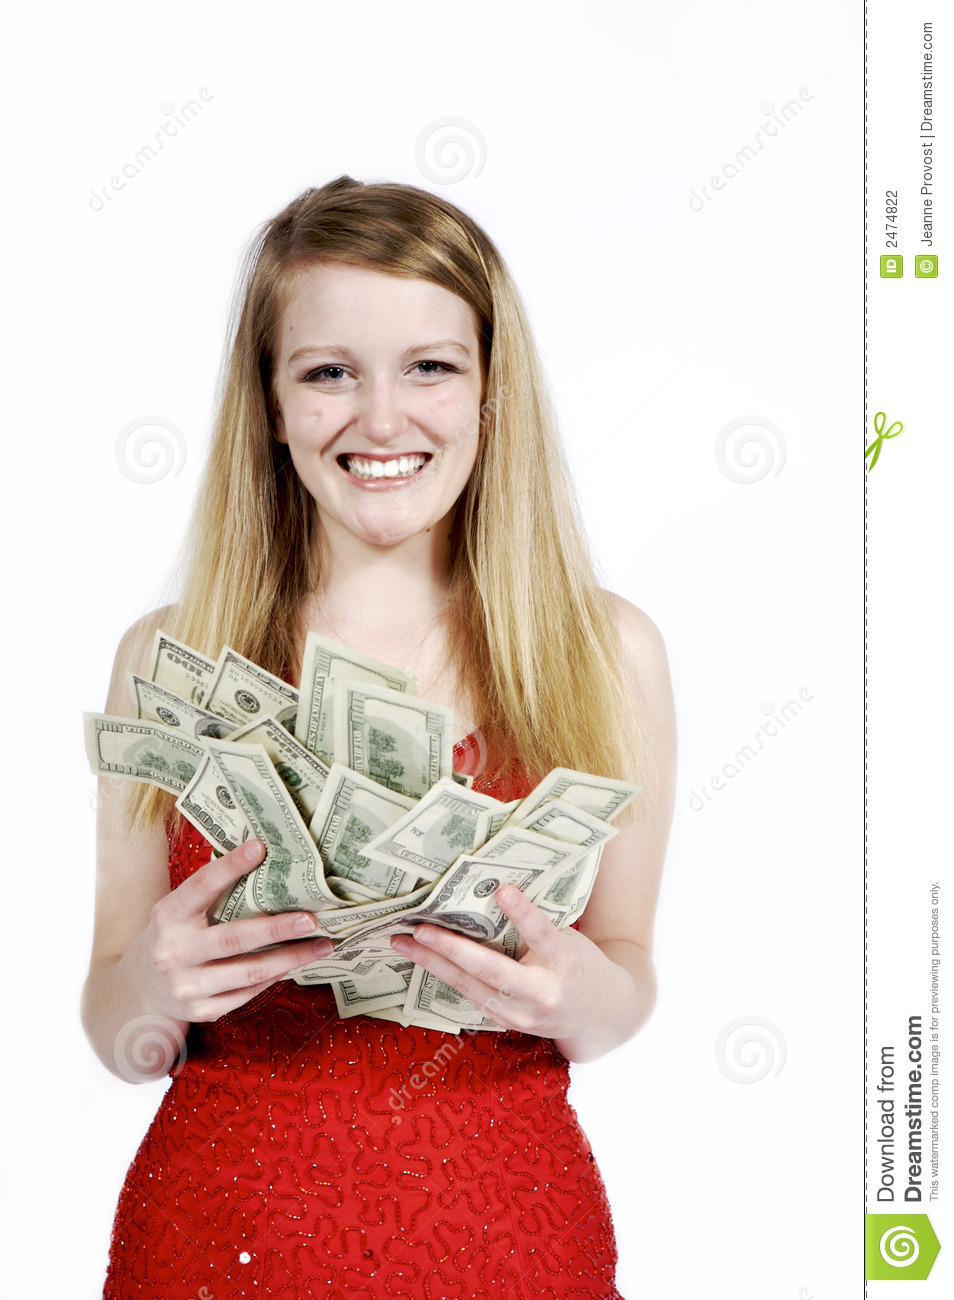 cash girls Visit the most popular and simplest online dating site to flirt, chart, or date with interesting people online, sign up for free.